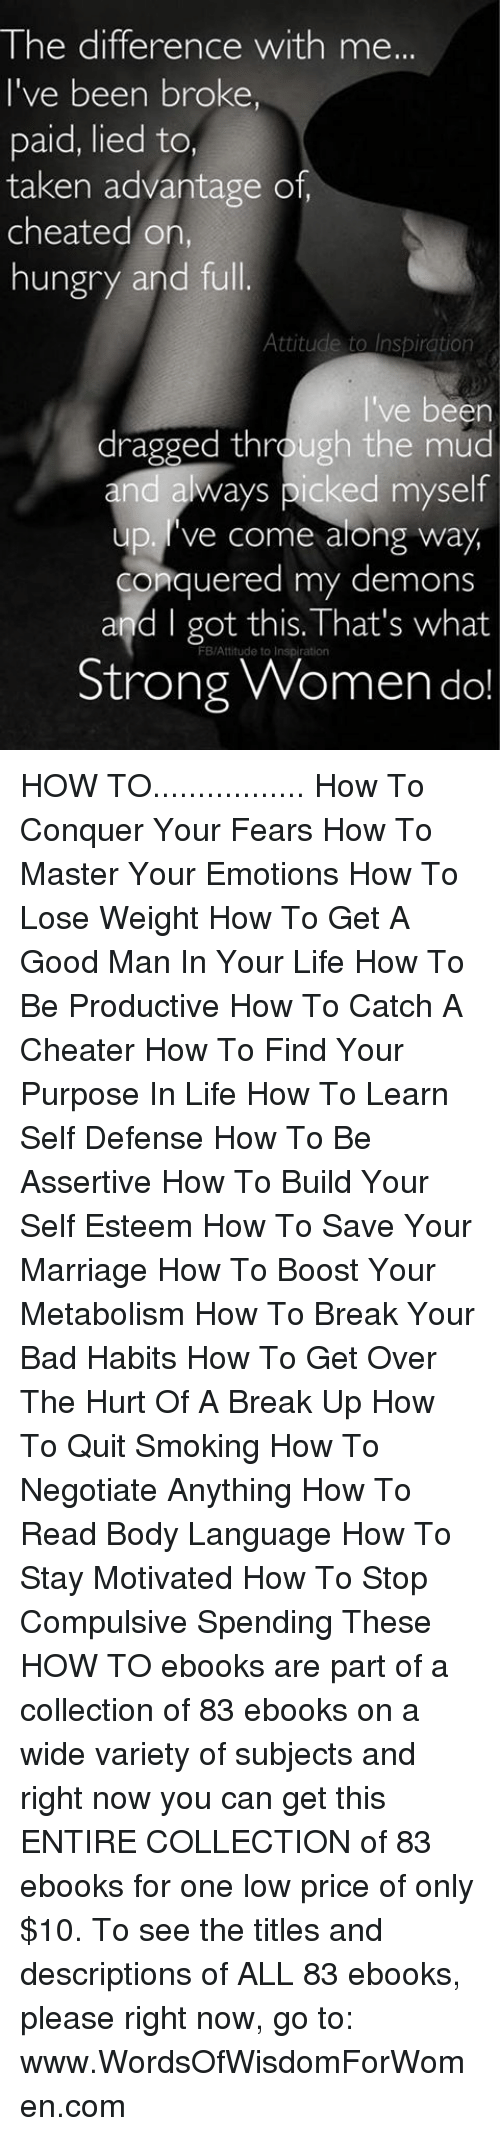 Cheating, Hungry, and Marriage: The difference with me...  I've been broker  paid, lied to  taken advantage of,  cheated on.  hungry and full  Attitude to Inspiration  ve been  dragged thr  the mud  and ays picked myself  up. ve come along way  conquered my demons  and I got this.That's what  FB/Attitude to  Strong Women do! HOW TO................. How To Conquer Your Fears How To Master Your Emotions How To Lose Weight How To Get A Good Man In Your Life  How To Be Productive  How To Catch A Cheater  How To Find Your Purpose In Life  How To Learn Self Defense How To Be Assertive   How To Build Your Self Esteem   How To Save Your Marriage  How To Boost Your Metabolism  How To Break Your Bad Habits   How To Get Over The Hurt Of A Break Up  How To Quit Smoking  How To Negotiate Anything  How To Read Body Language   How To Stay Motivated  How To Stop Compulsive Spending    These HOW TO ebooks are part of a collection of 83 ebooks on a wide variety of subjects and right now you can get this ENTIRE COLLECTION of 83 ebooks for one low price of only $10. To see the titles and descriptions of ALL 83 ebooks, please right now, go to: www.WordsOfWisdomForWomen.com